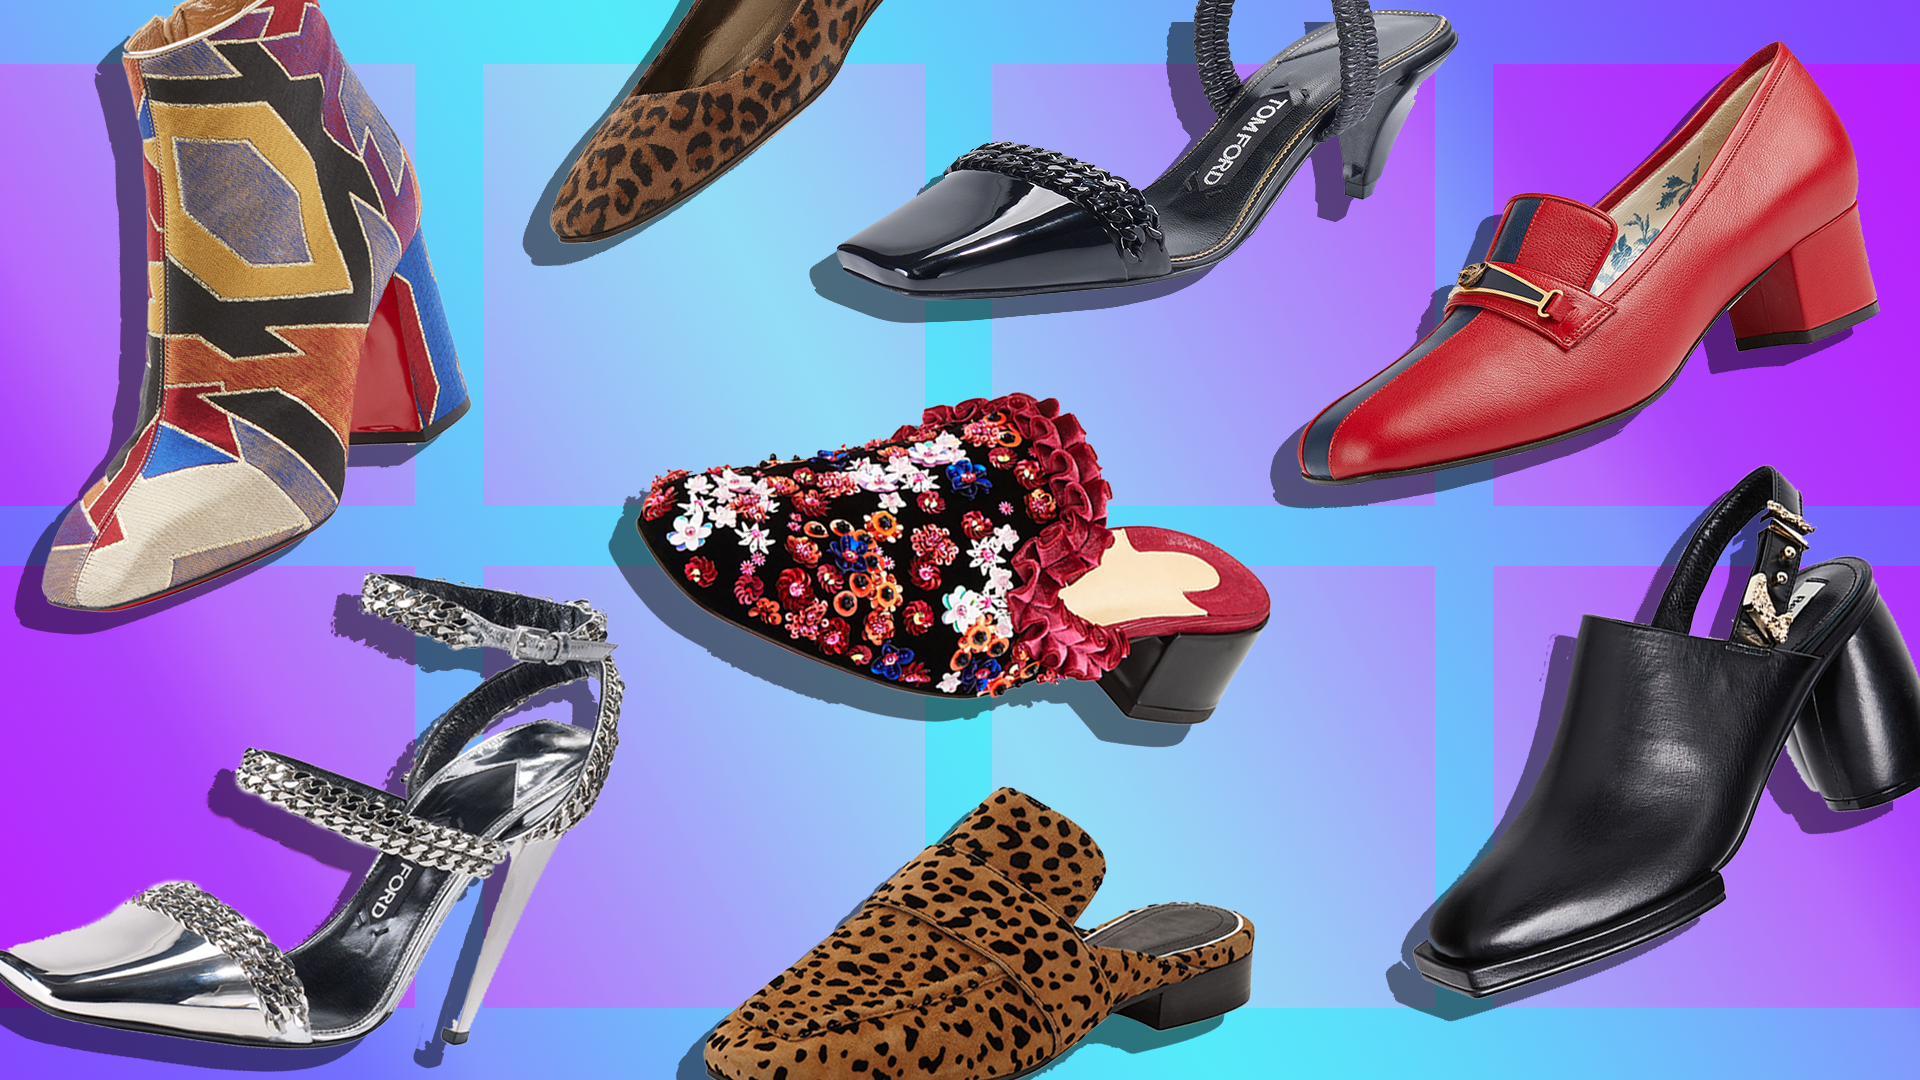 Square-Toe Shoes Are Giving Pointed-Toe Shoes a Run for Their Money